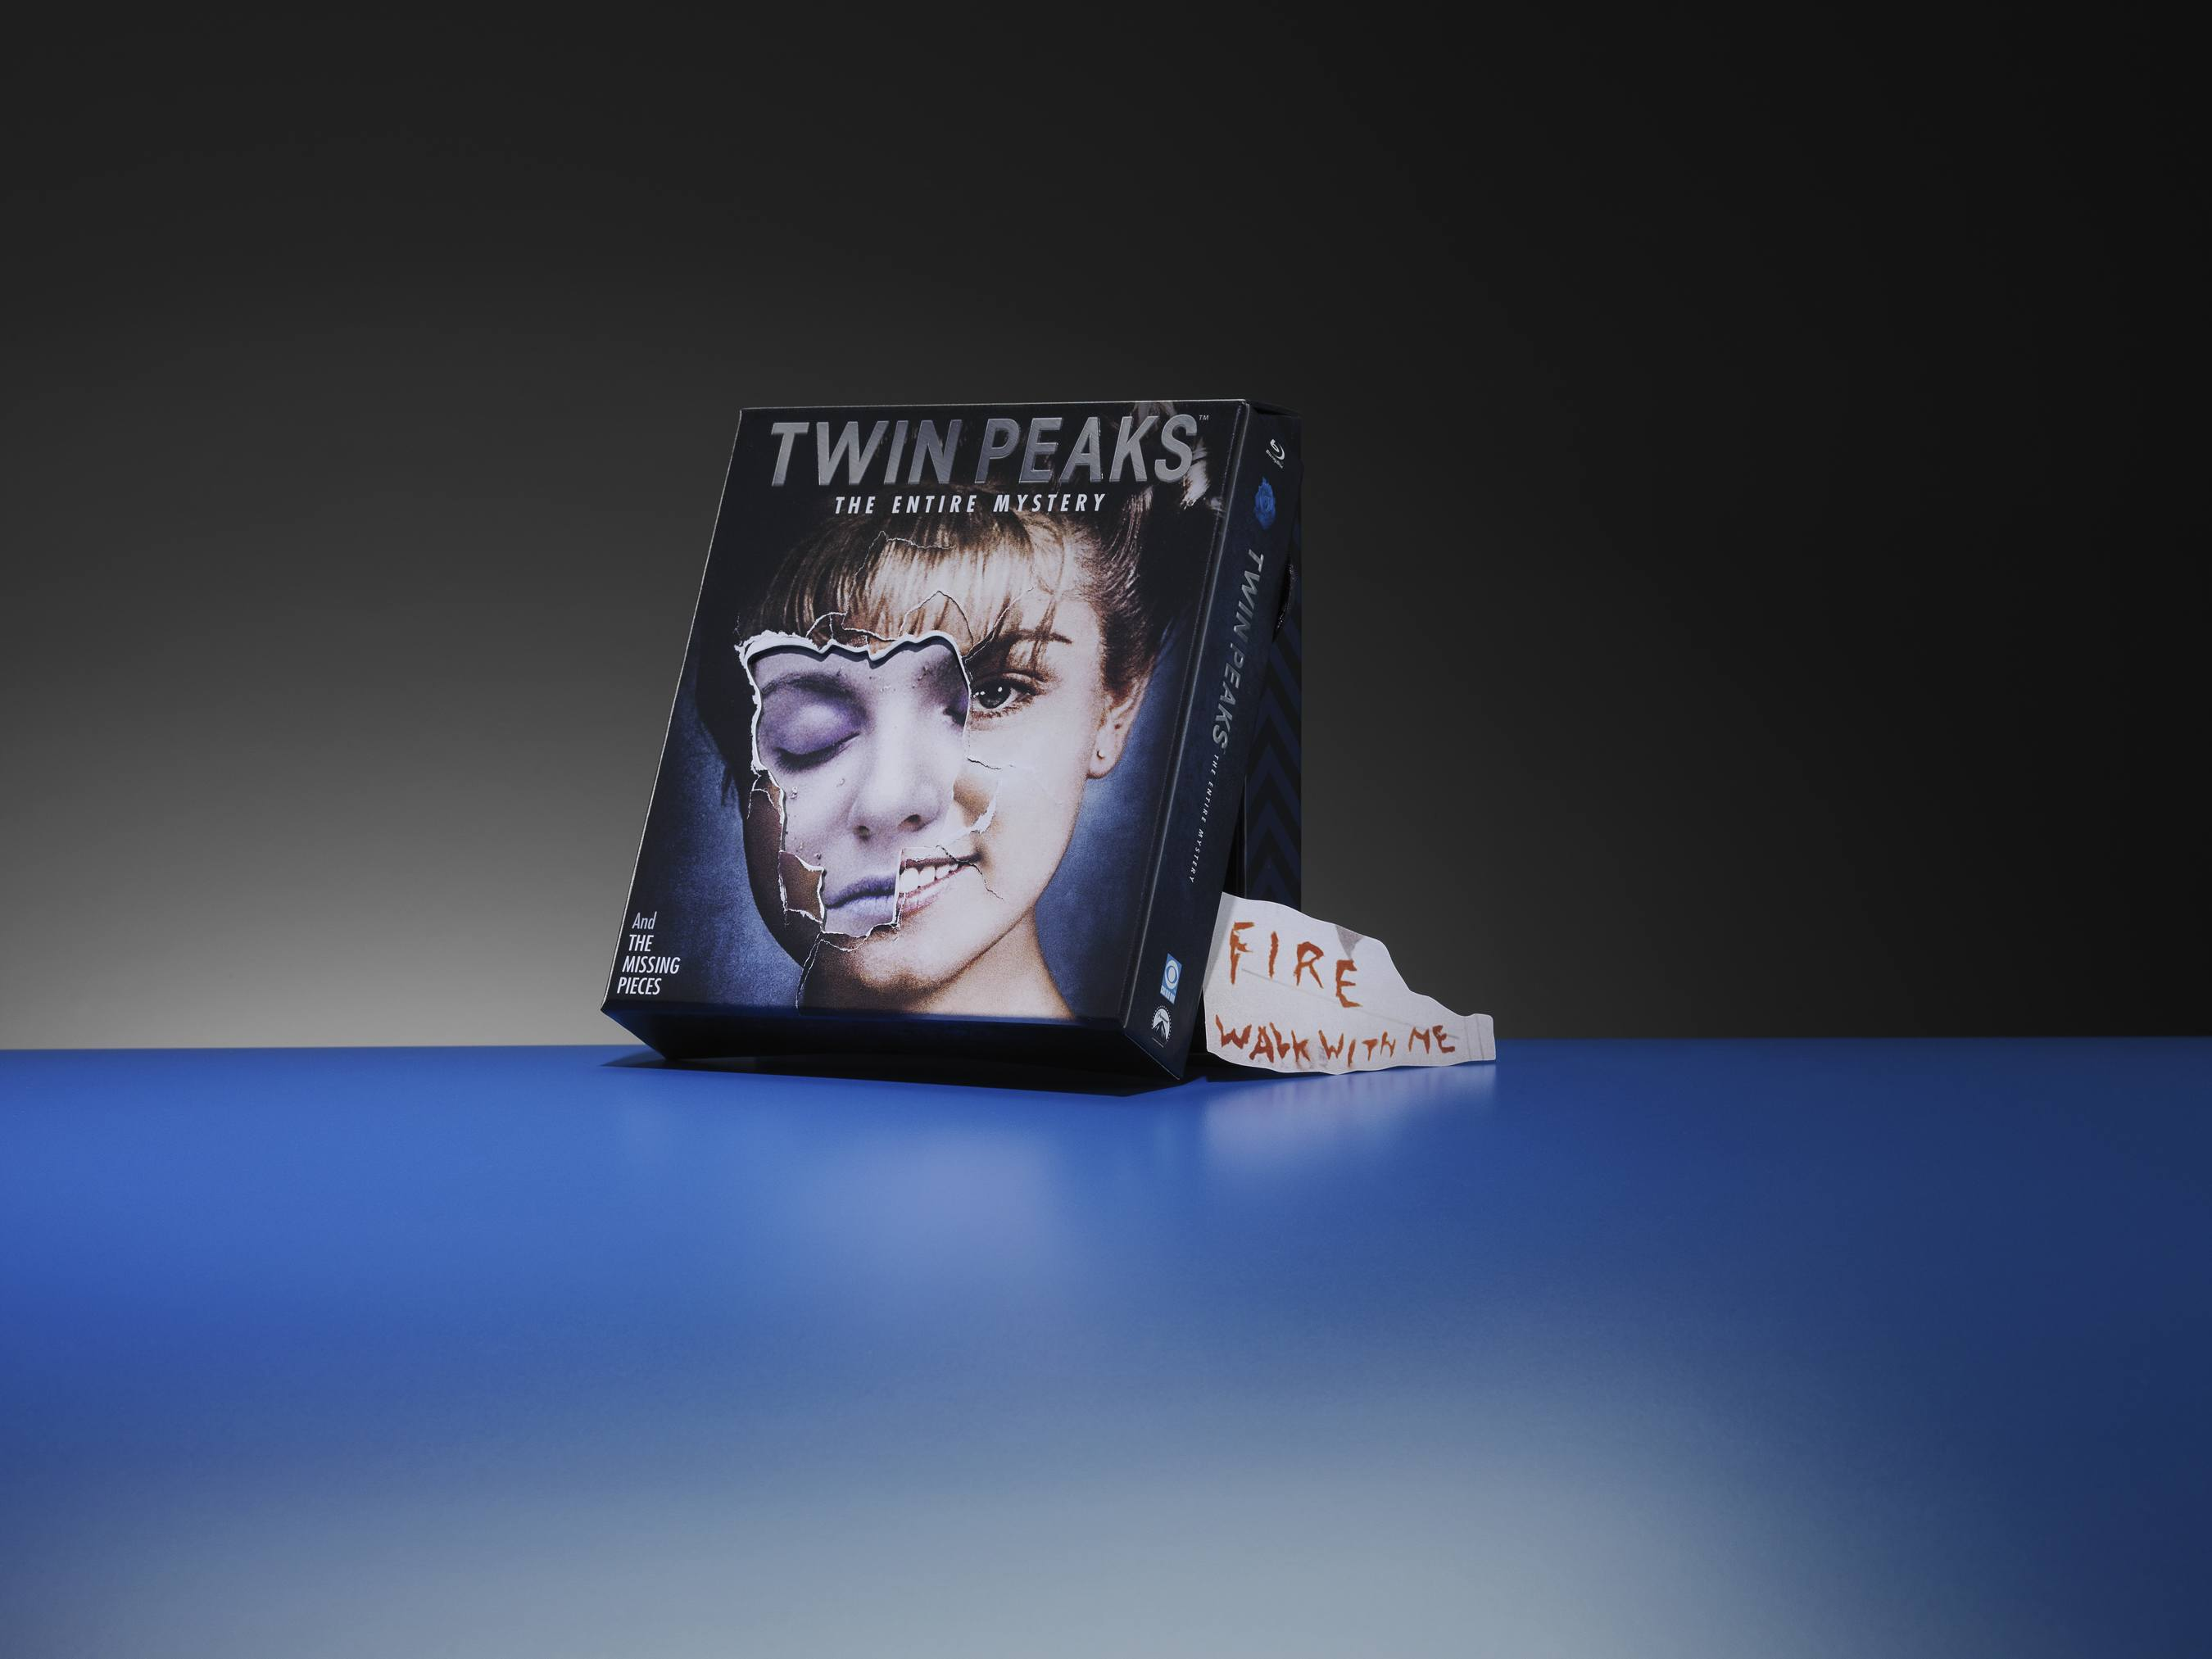 Twin Peaks packaging includes a layered technique that creates the three-dimensional effect